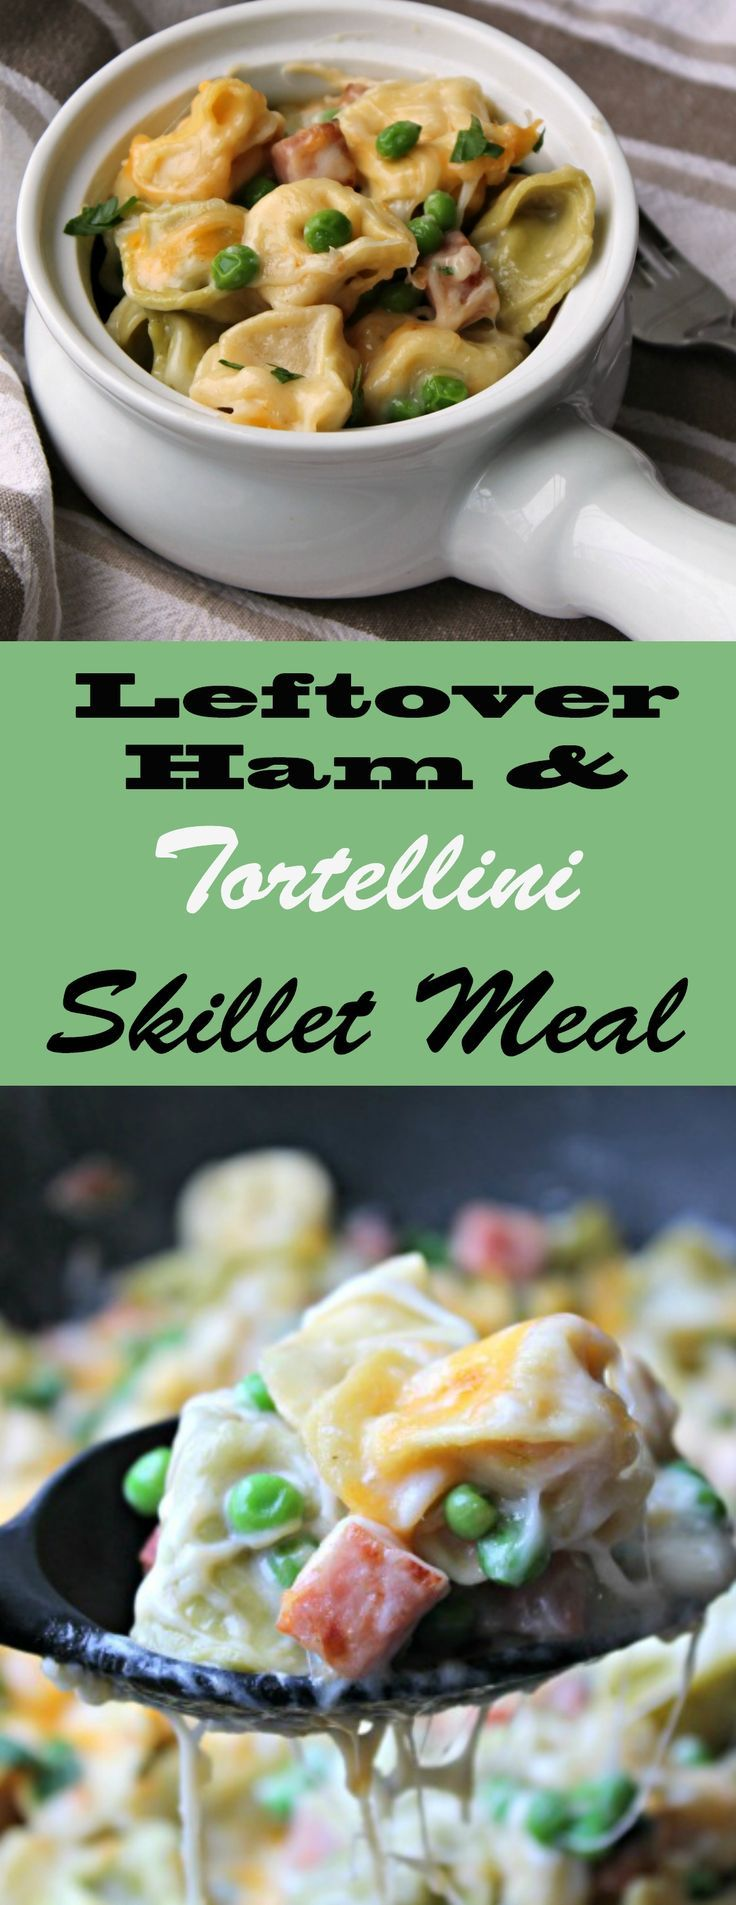 Use up that leftover Easter Ham and make this easy, tortellini skillet meal.  Made in less than 30 minutes, you can't beat a meal like this.  No leftover ham?  No problem, sub in a ham steak.